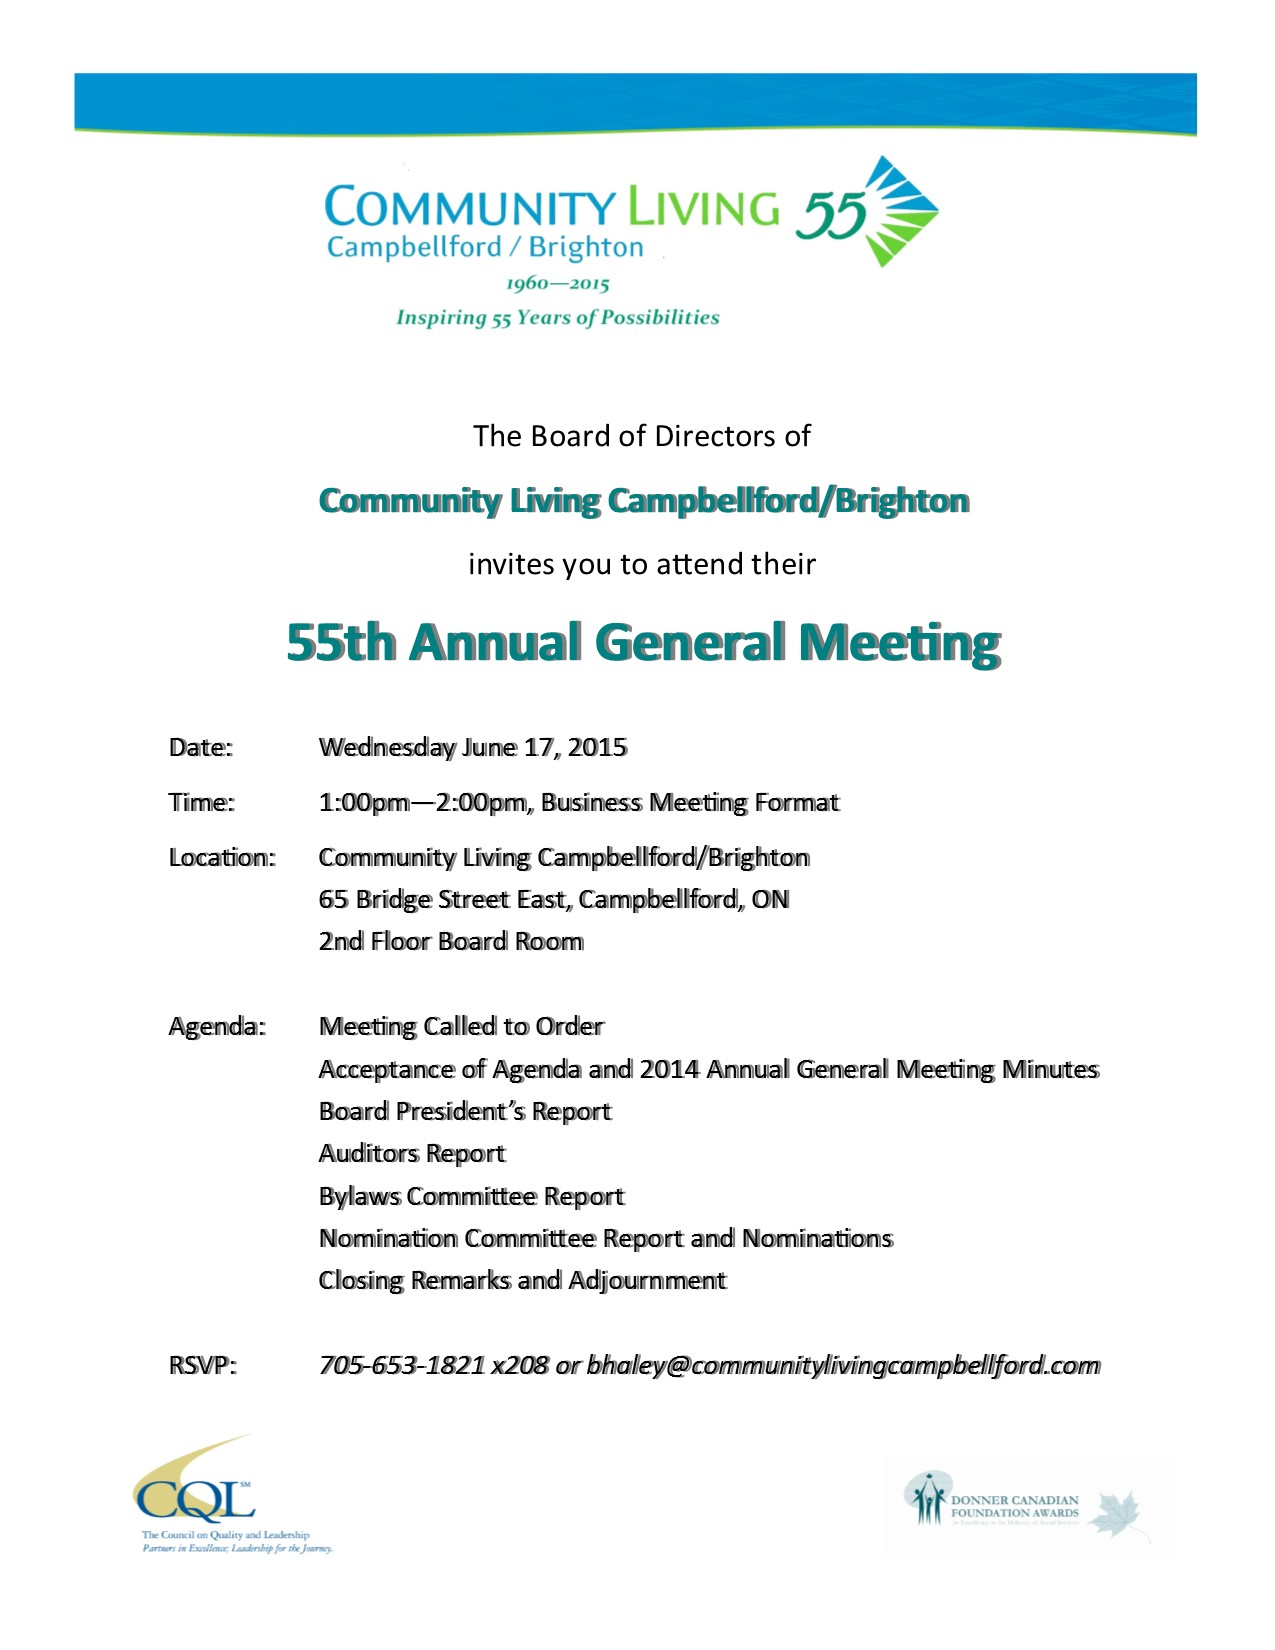 55th annual general meeting community living campbellford brighton agm invitation june 17 2015 3 altavistaventures Gallery